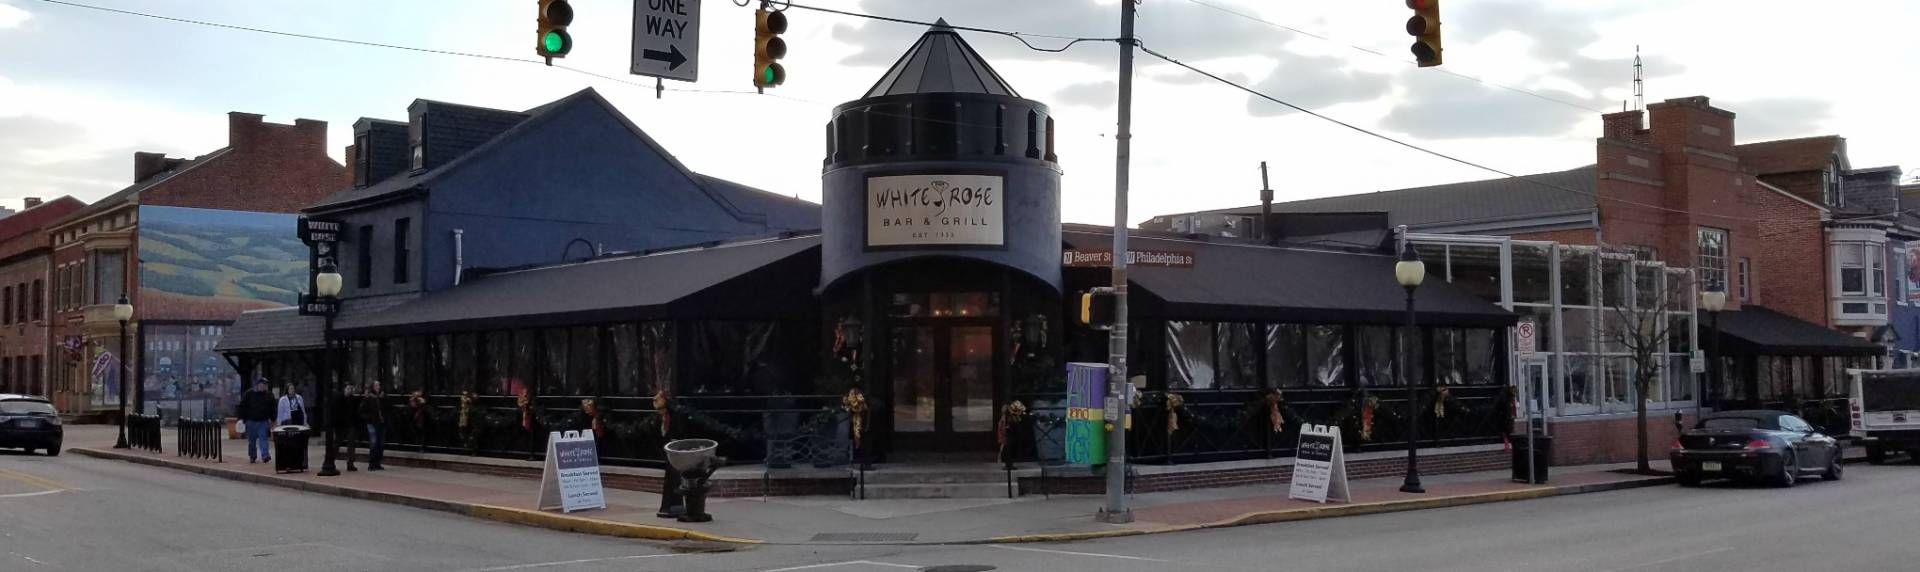 white rose bar and grill york pa